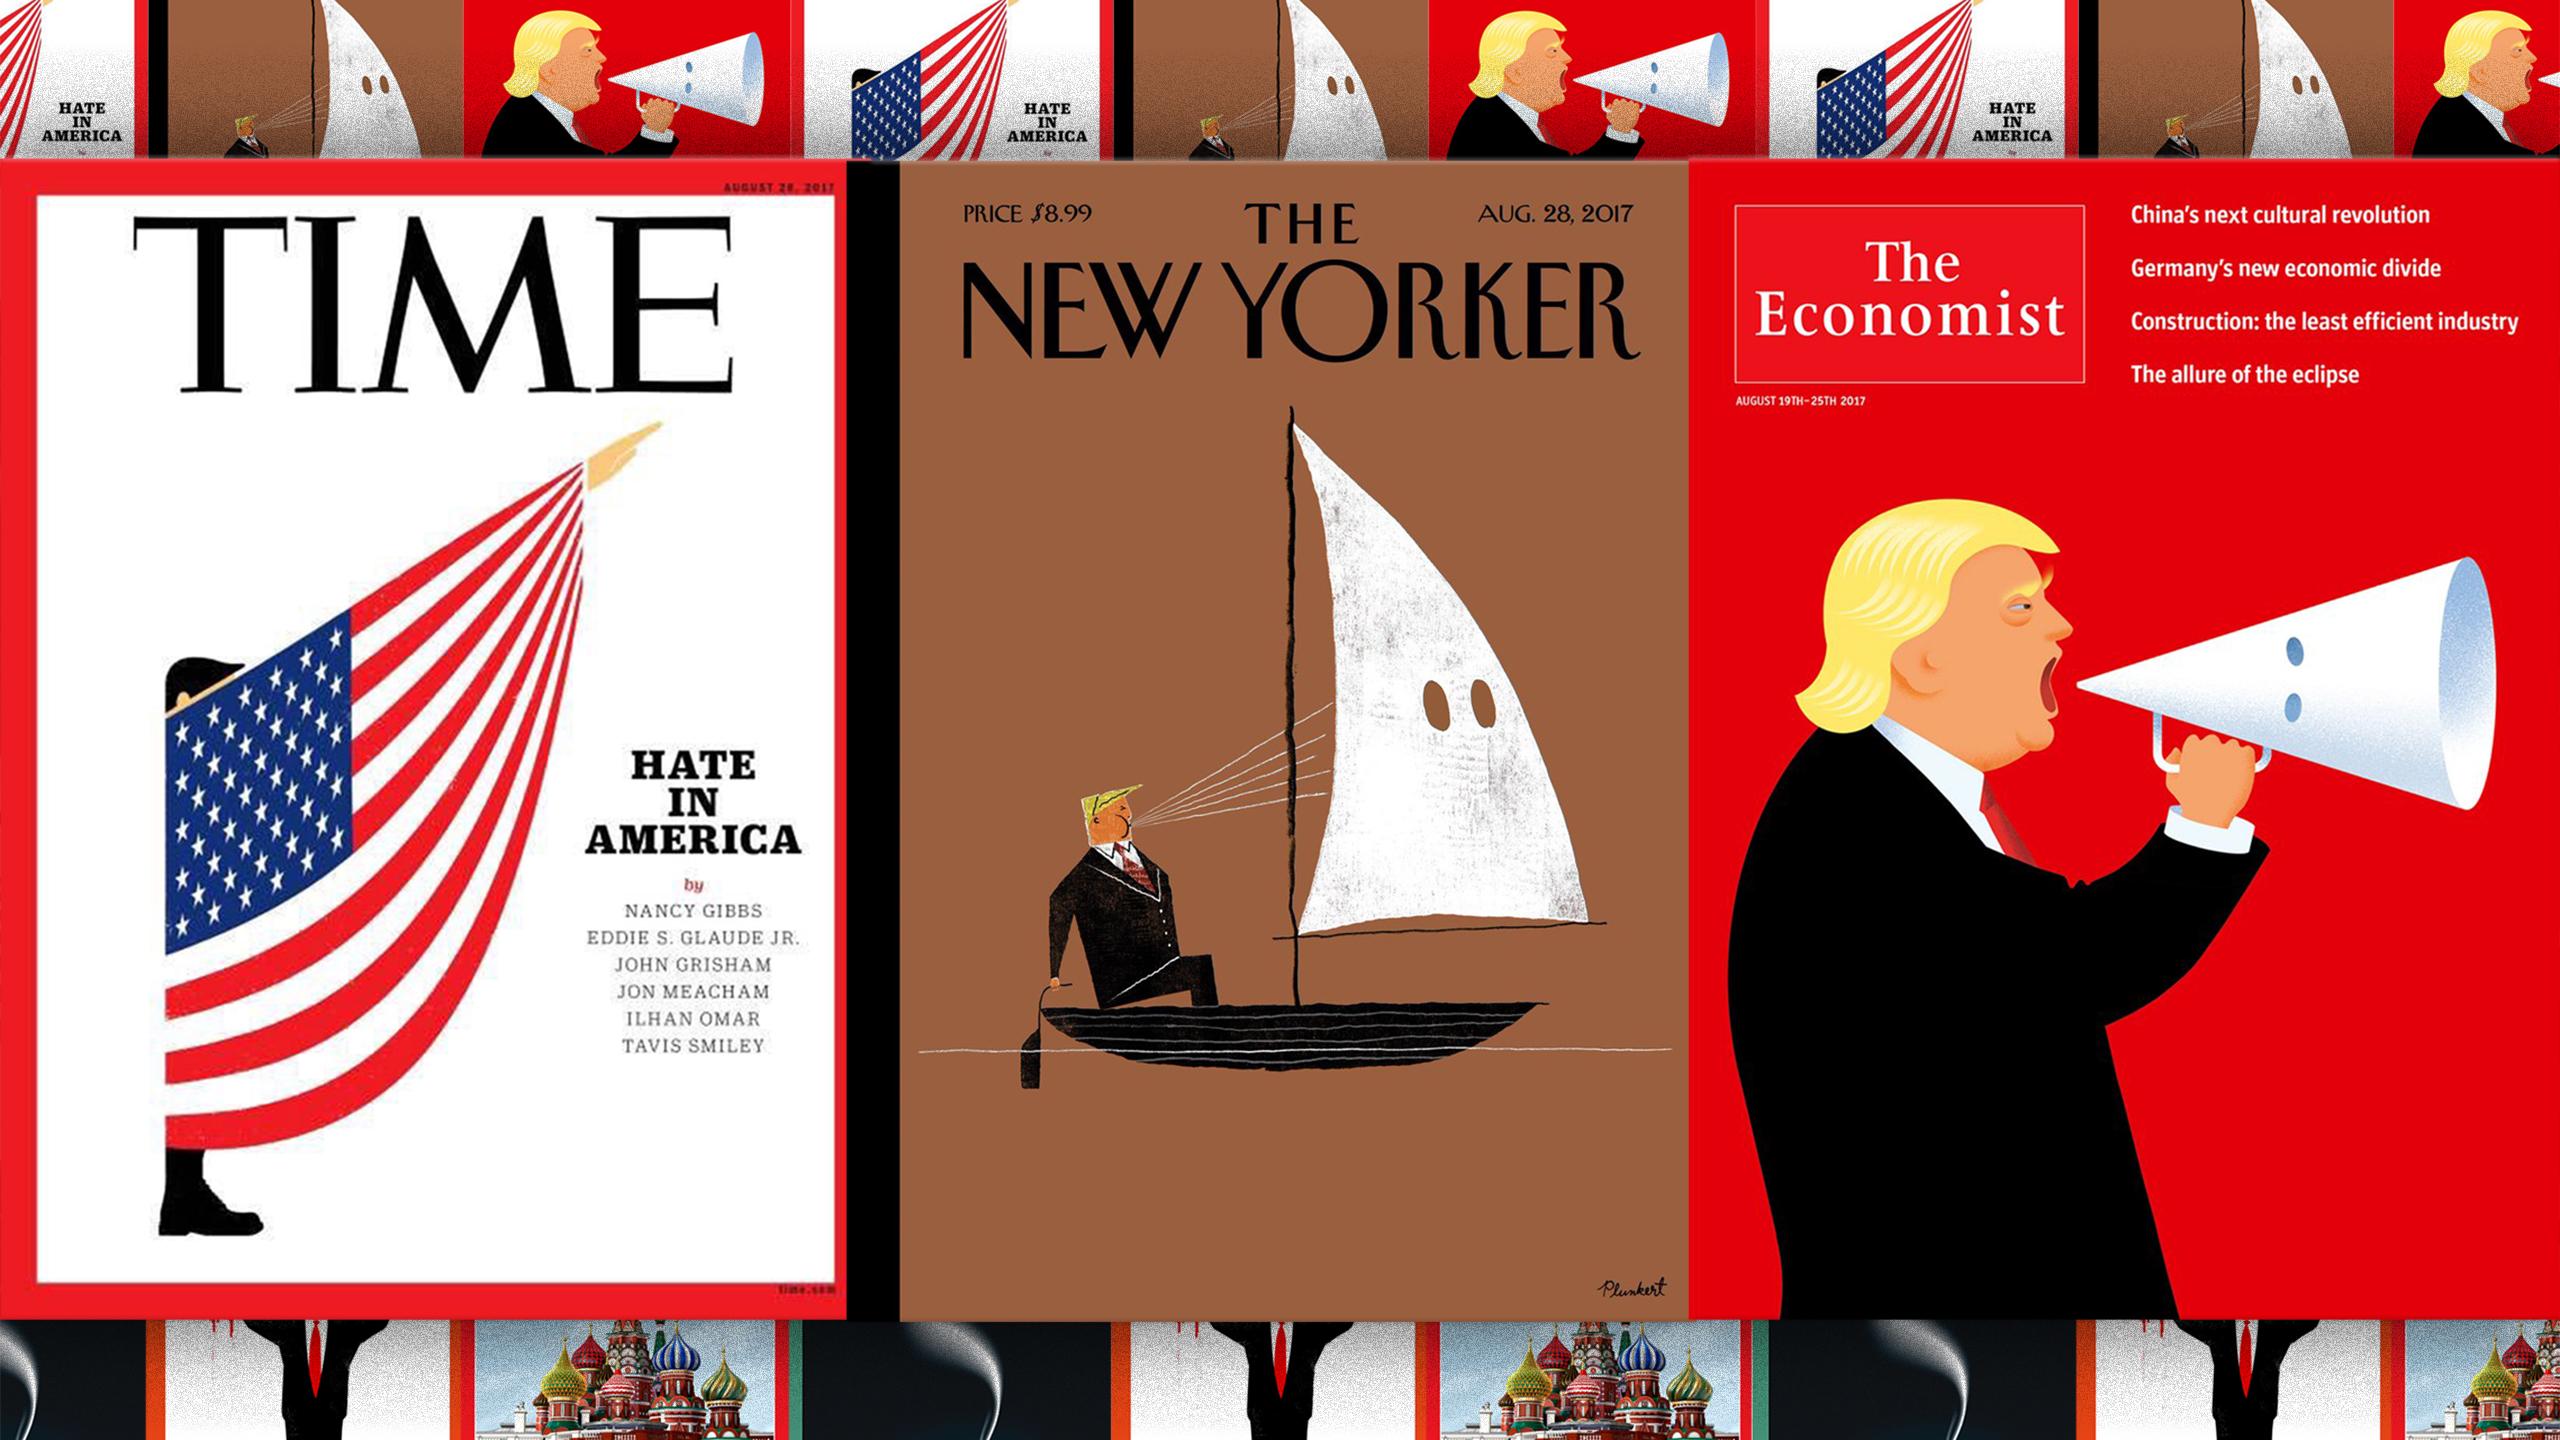 Magazine covers from Time, The Economist, and The New Yorker of cartoons portraying Donald Trump with a KKK hood or sail